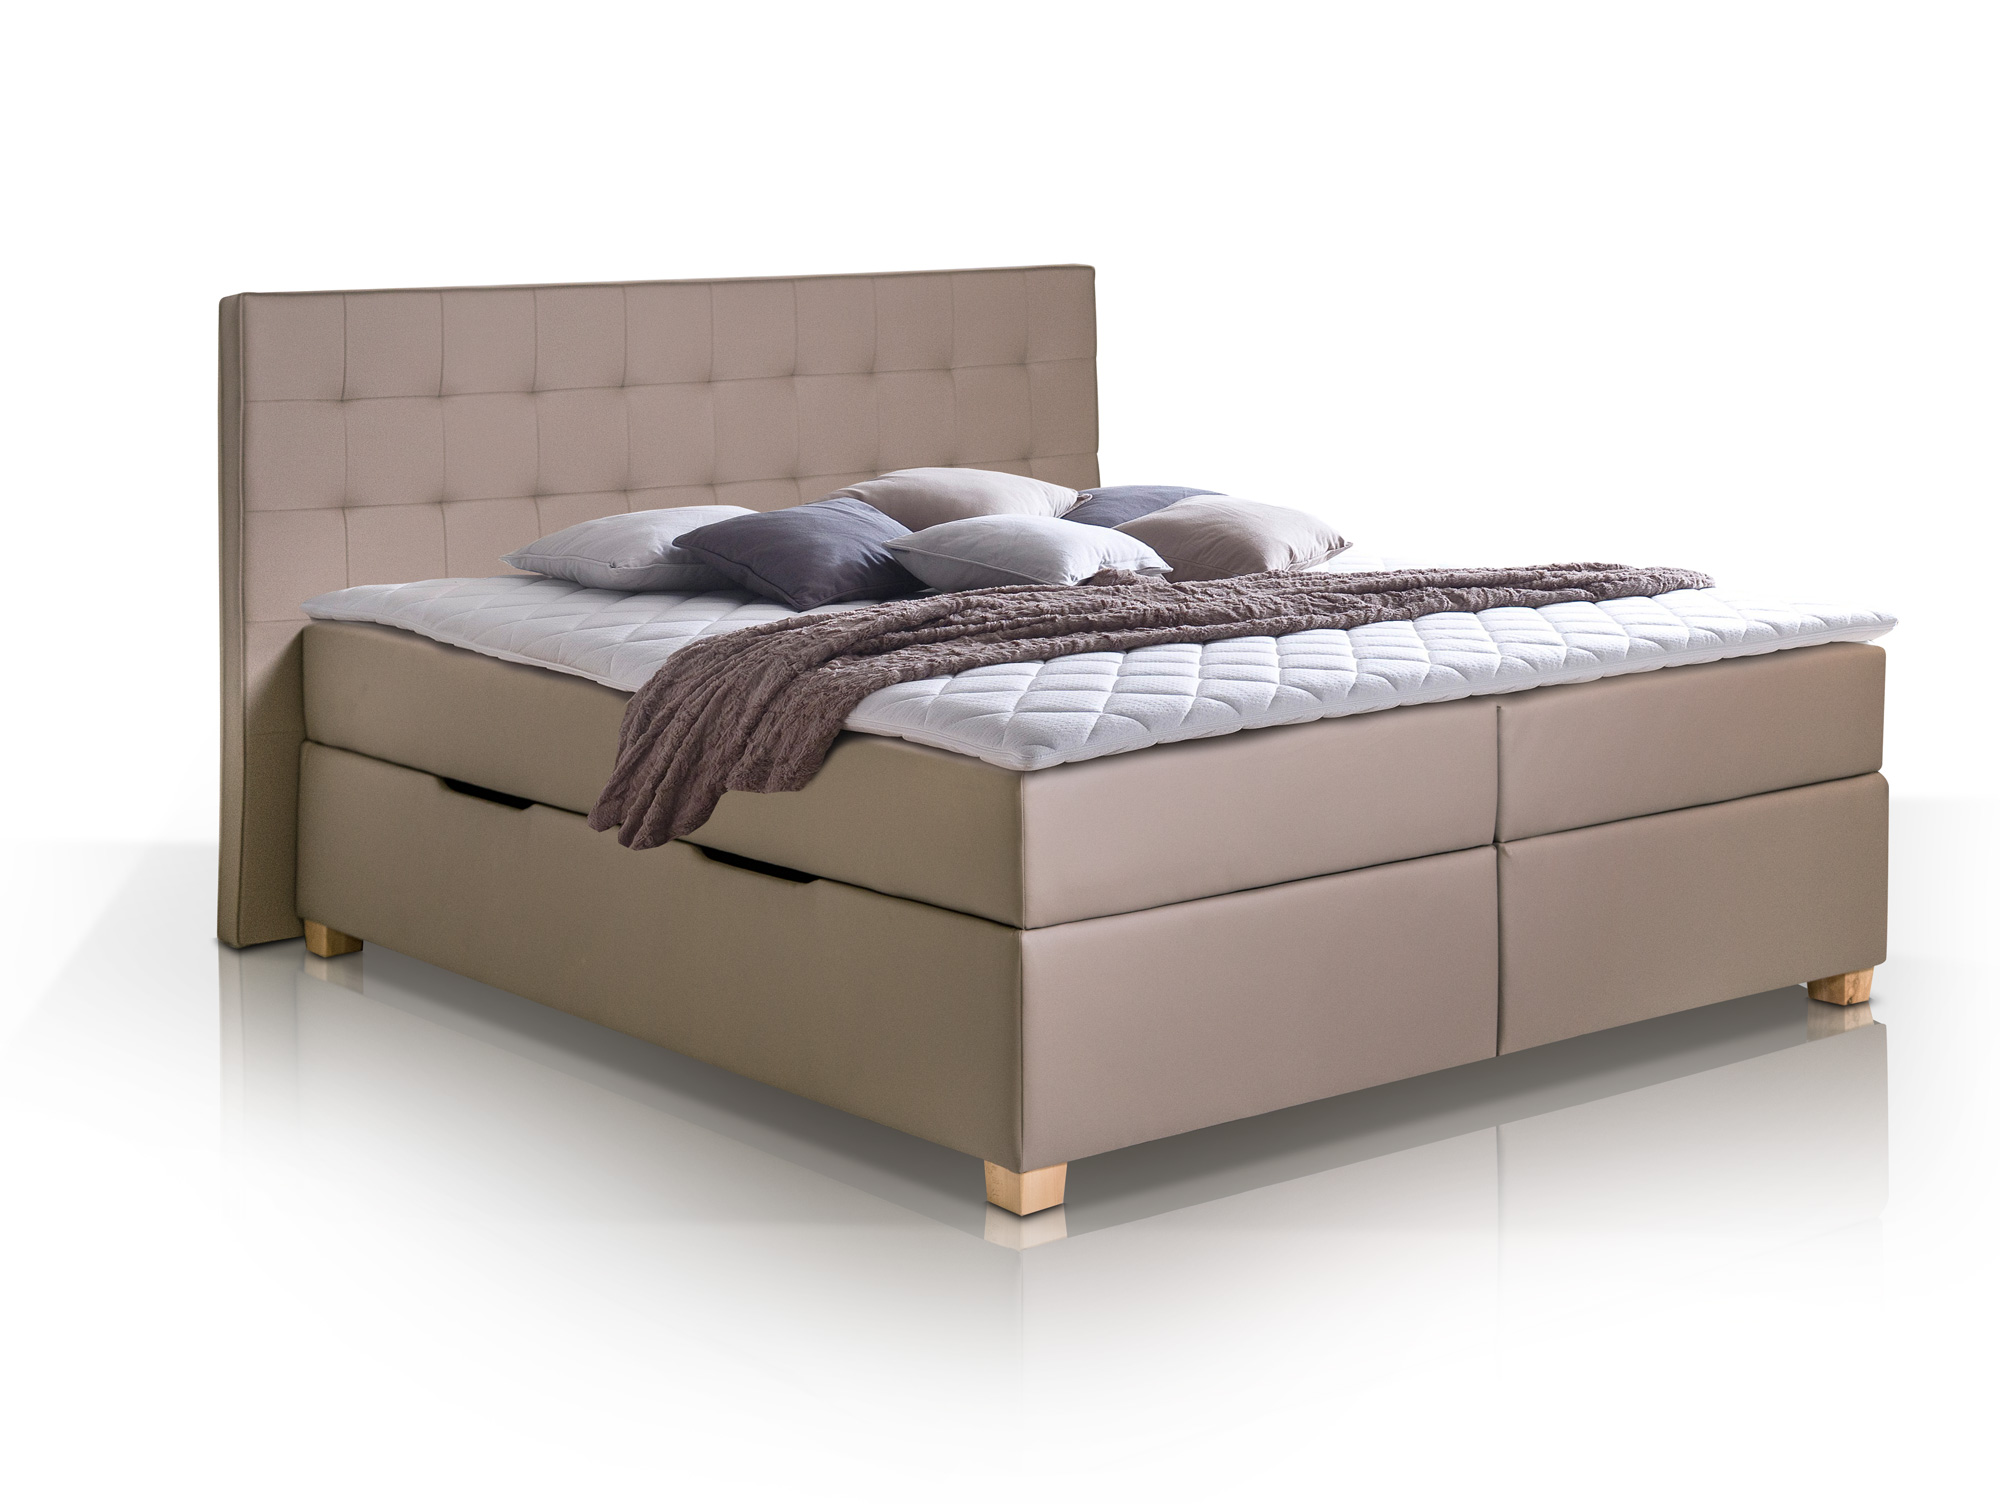 ida boxspringbett kunstleder mit bettkasten 200 x 200 cm muddy h rtegrad 3. Black Bedroom Furniture Sets. Home Design Ideas